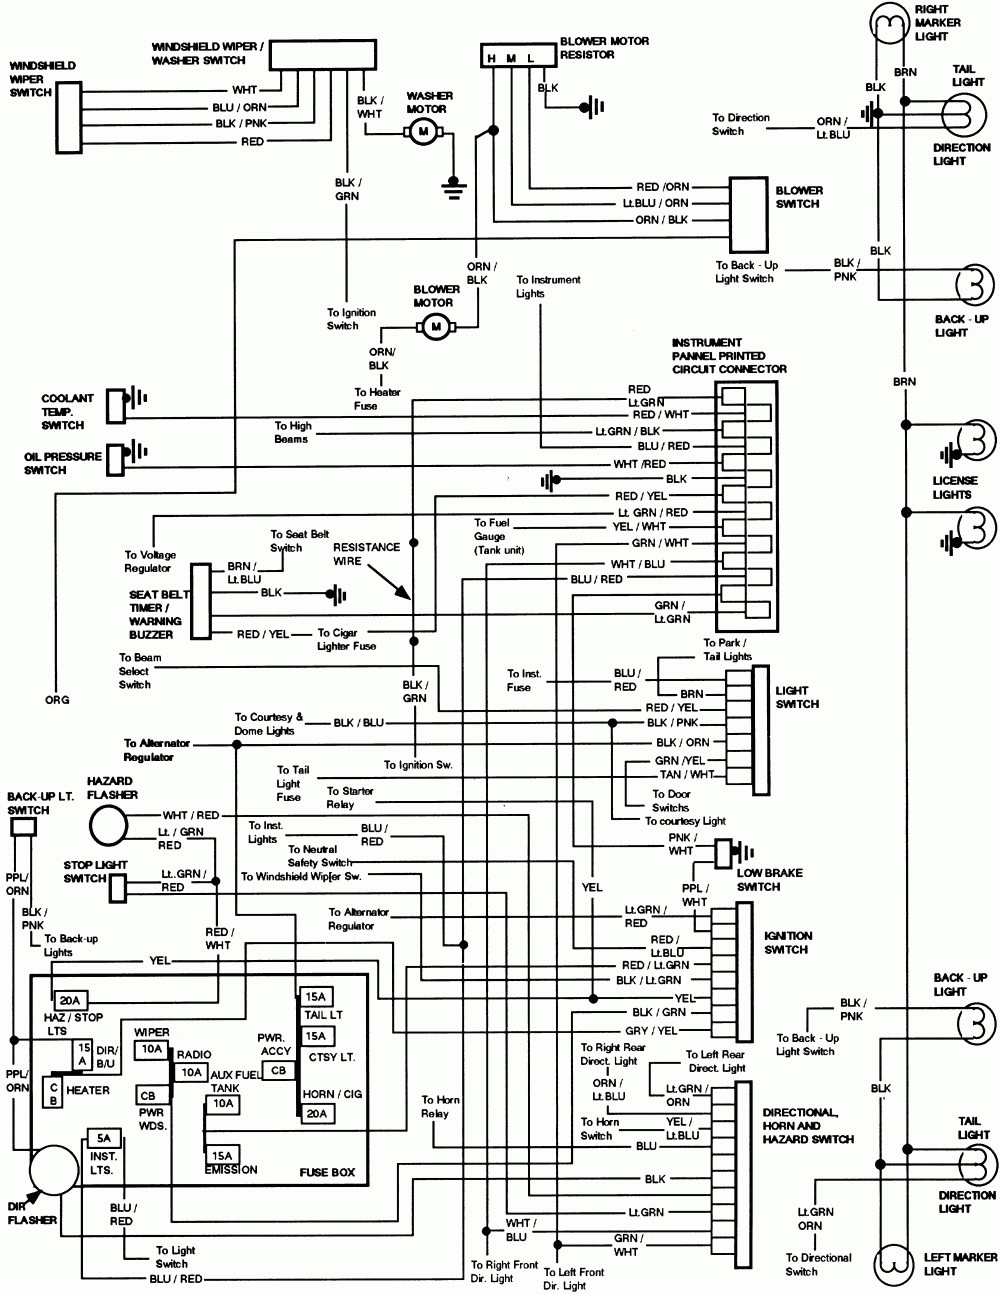 DIAGRAM] 1992 F150 Wiring Diagram - Kenwood Radio Wiring Diagram List  switch.mon1erinstrument.frmon1erinstrument.fr